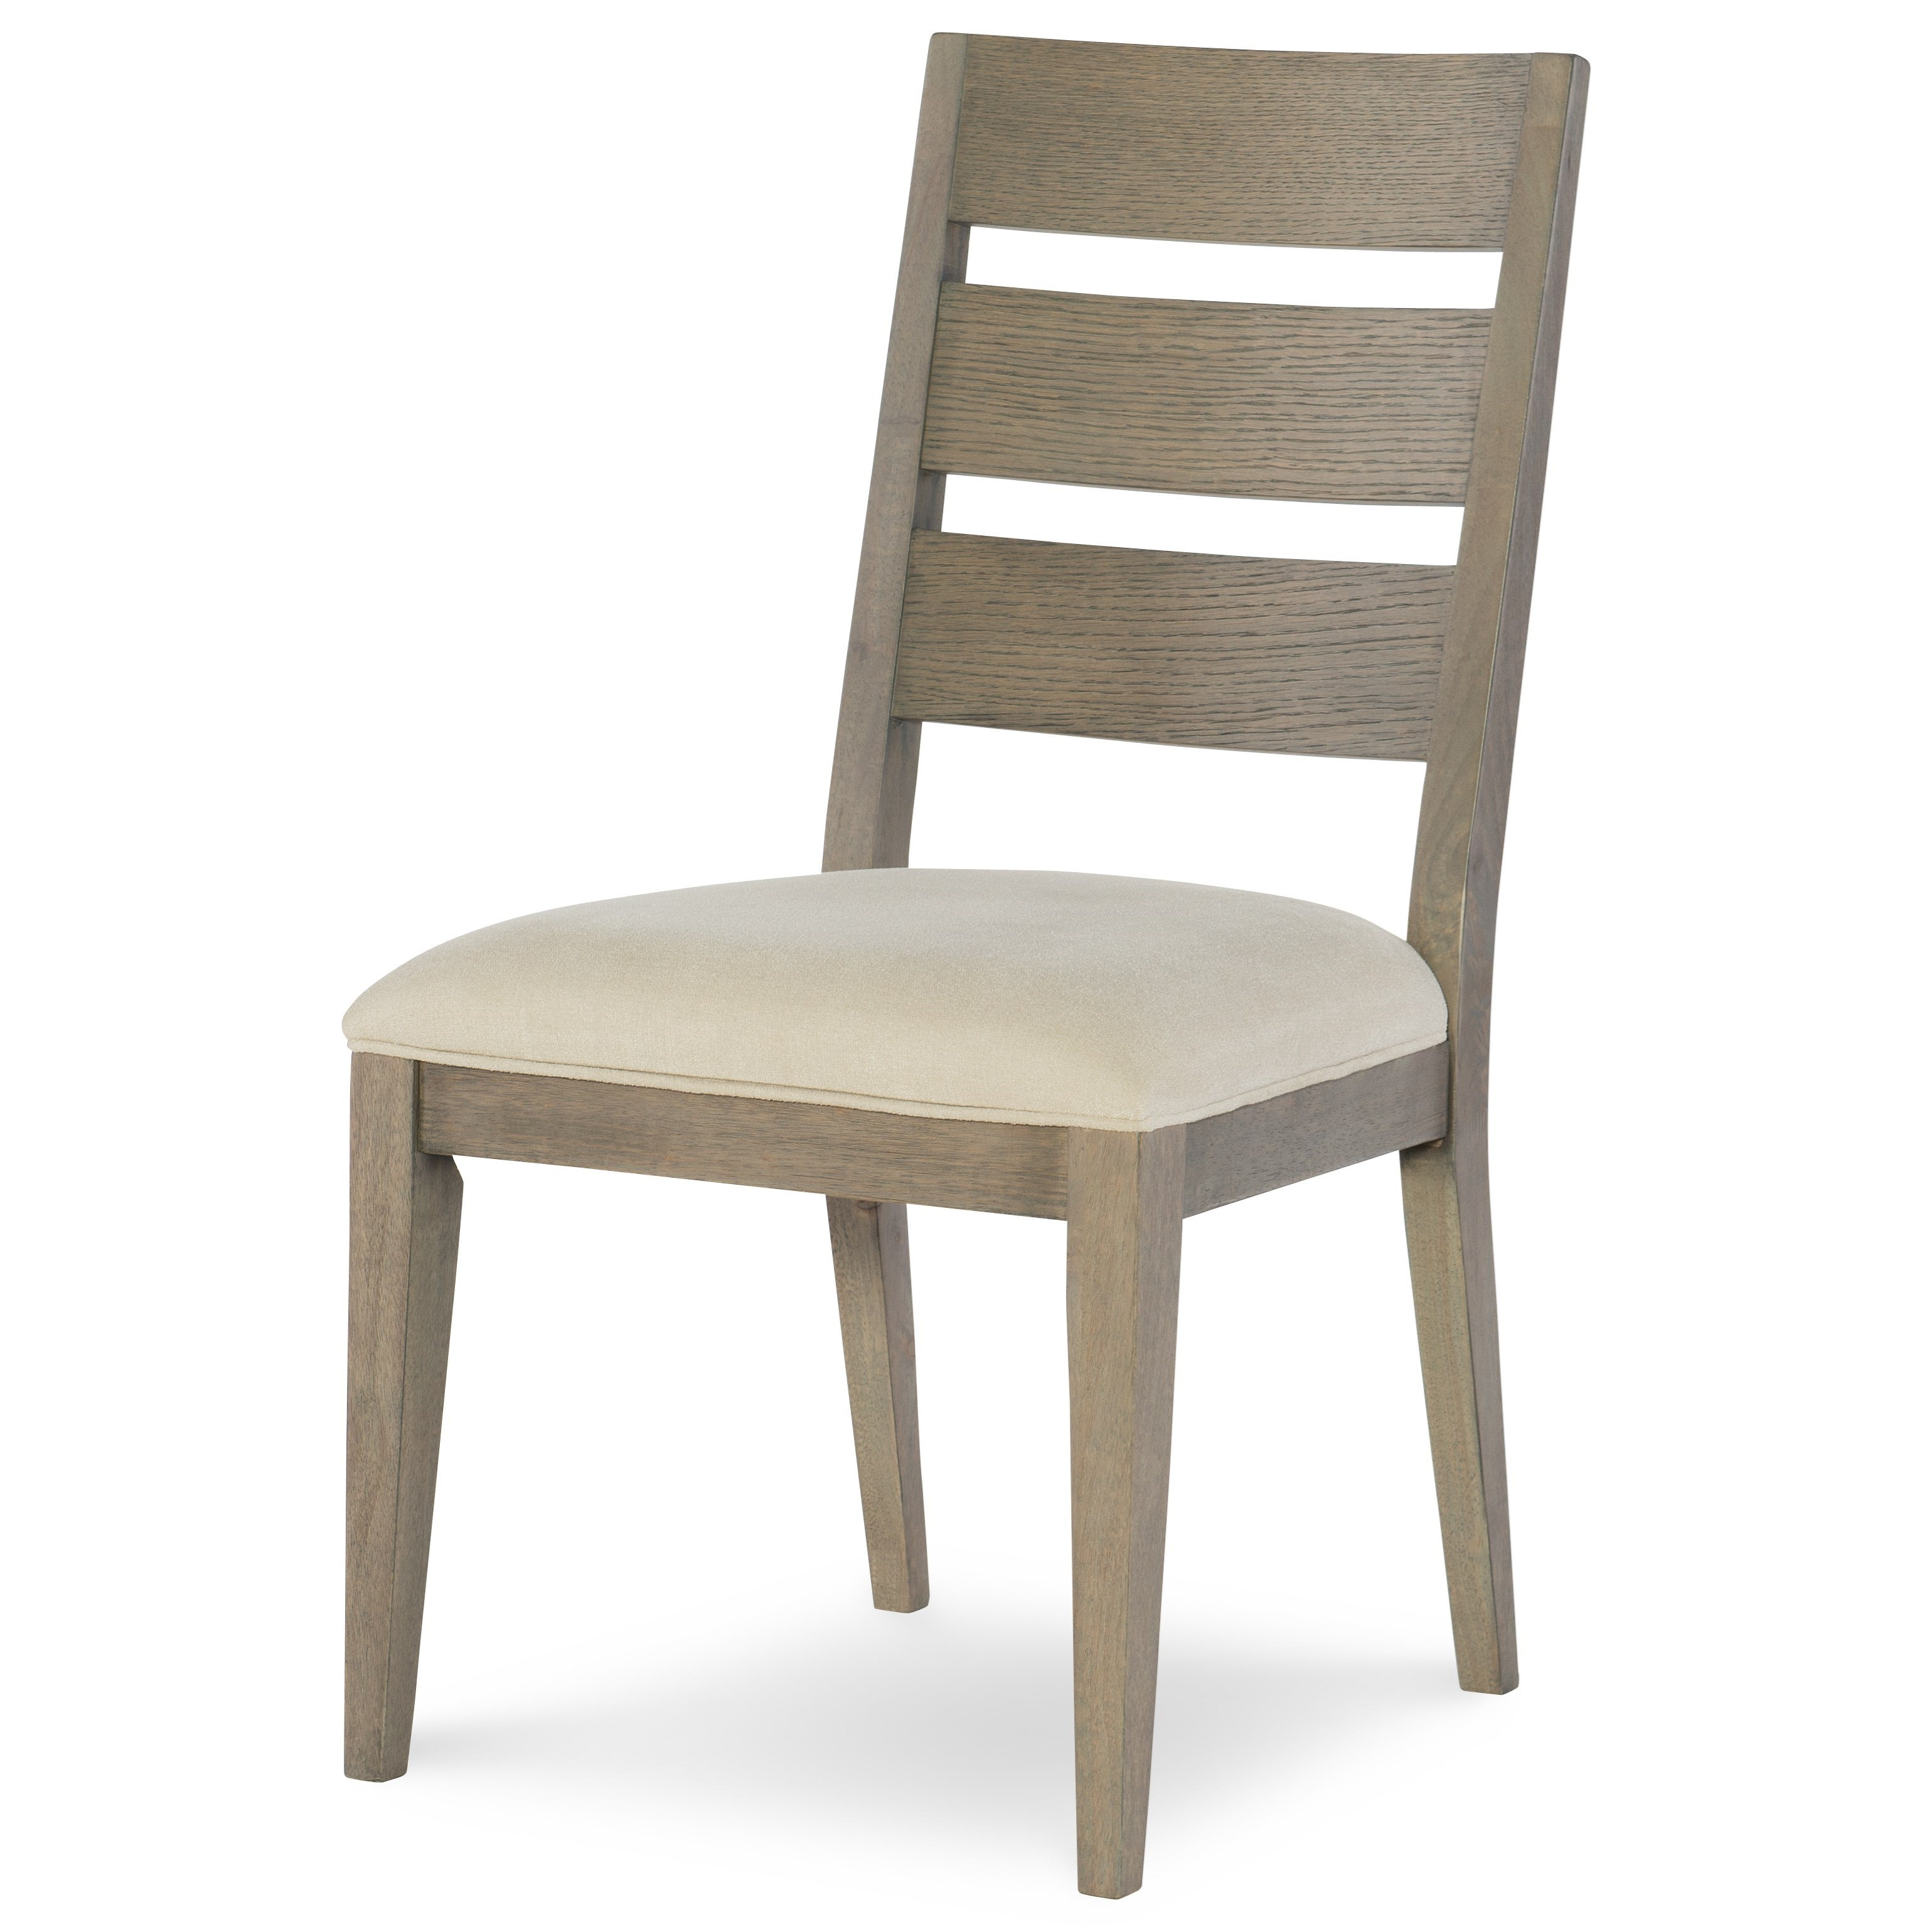 Rachael Ray Home High Line Ladder Back Side Chair - Item Number: 6000-140 KD